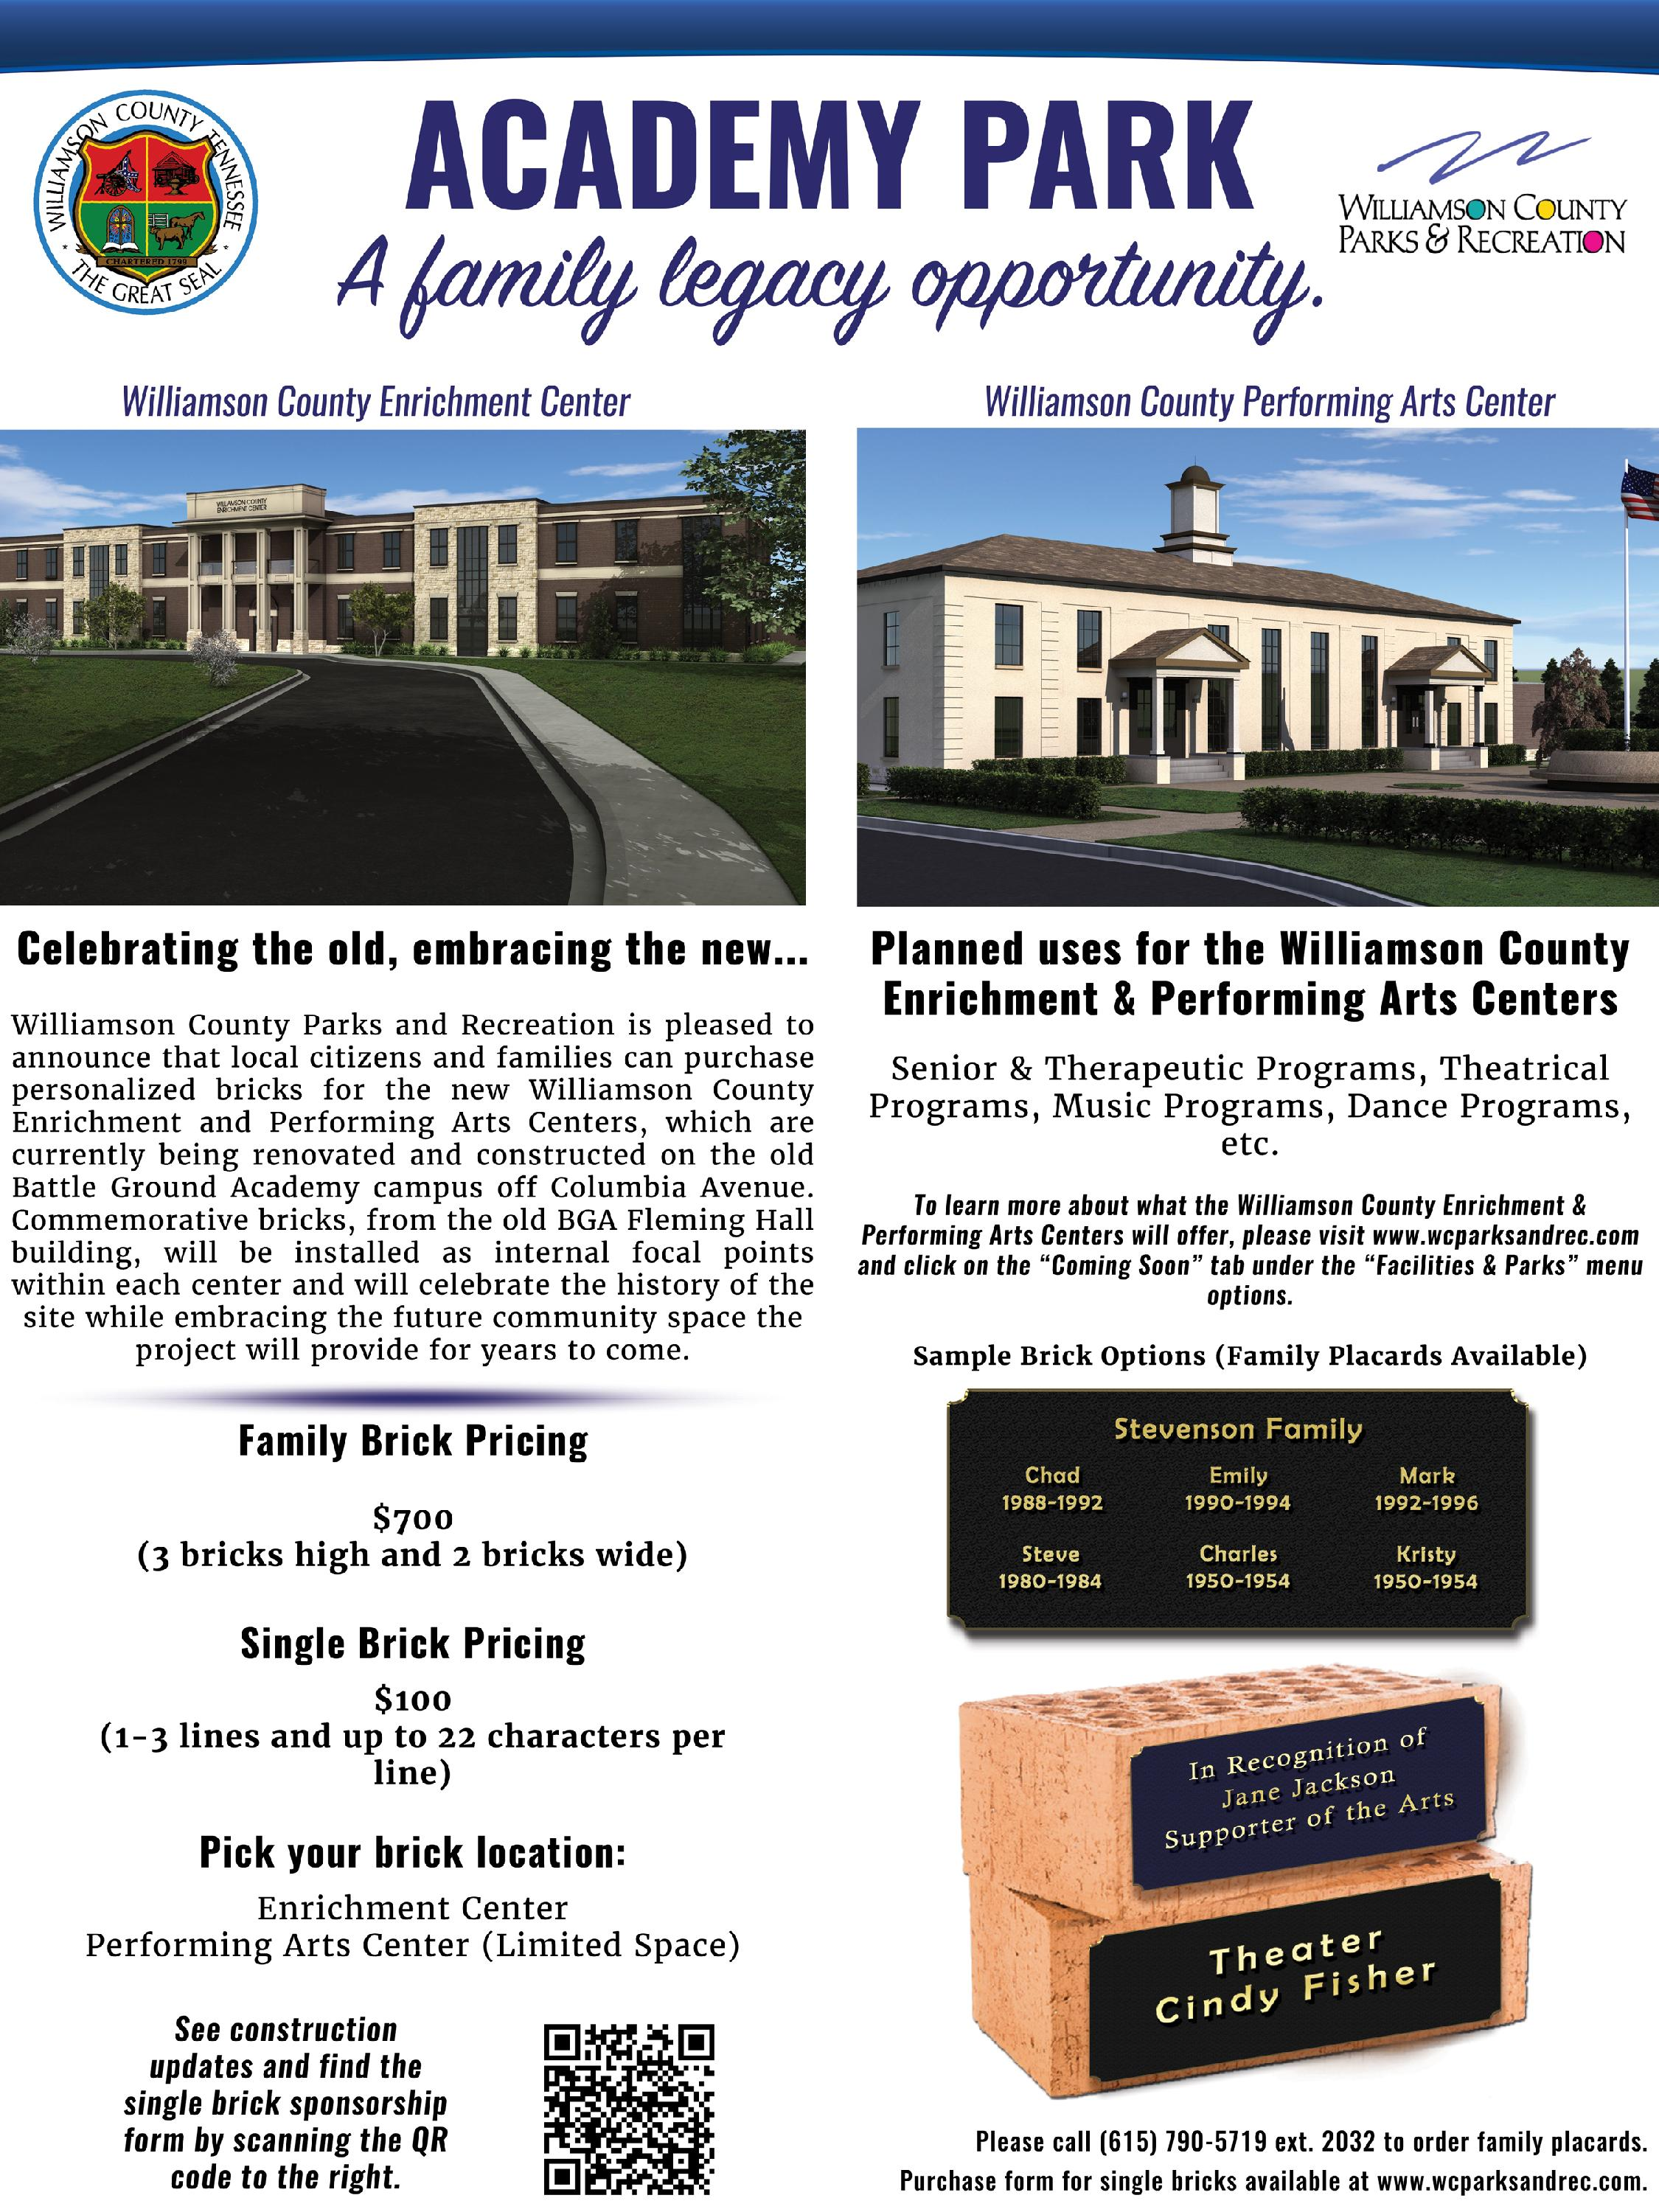 Academy Part Legacy Bricks sponsorship brochure